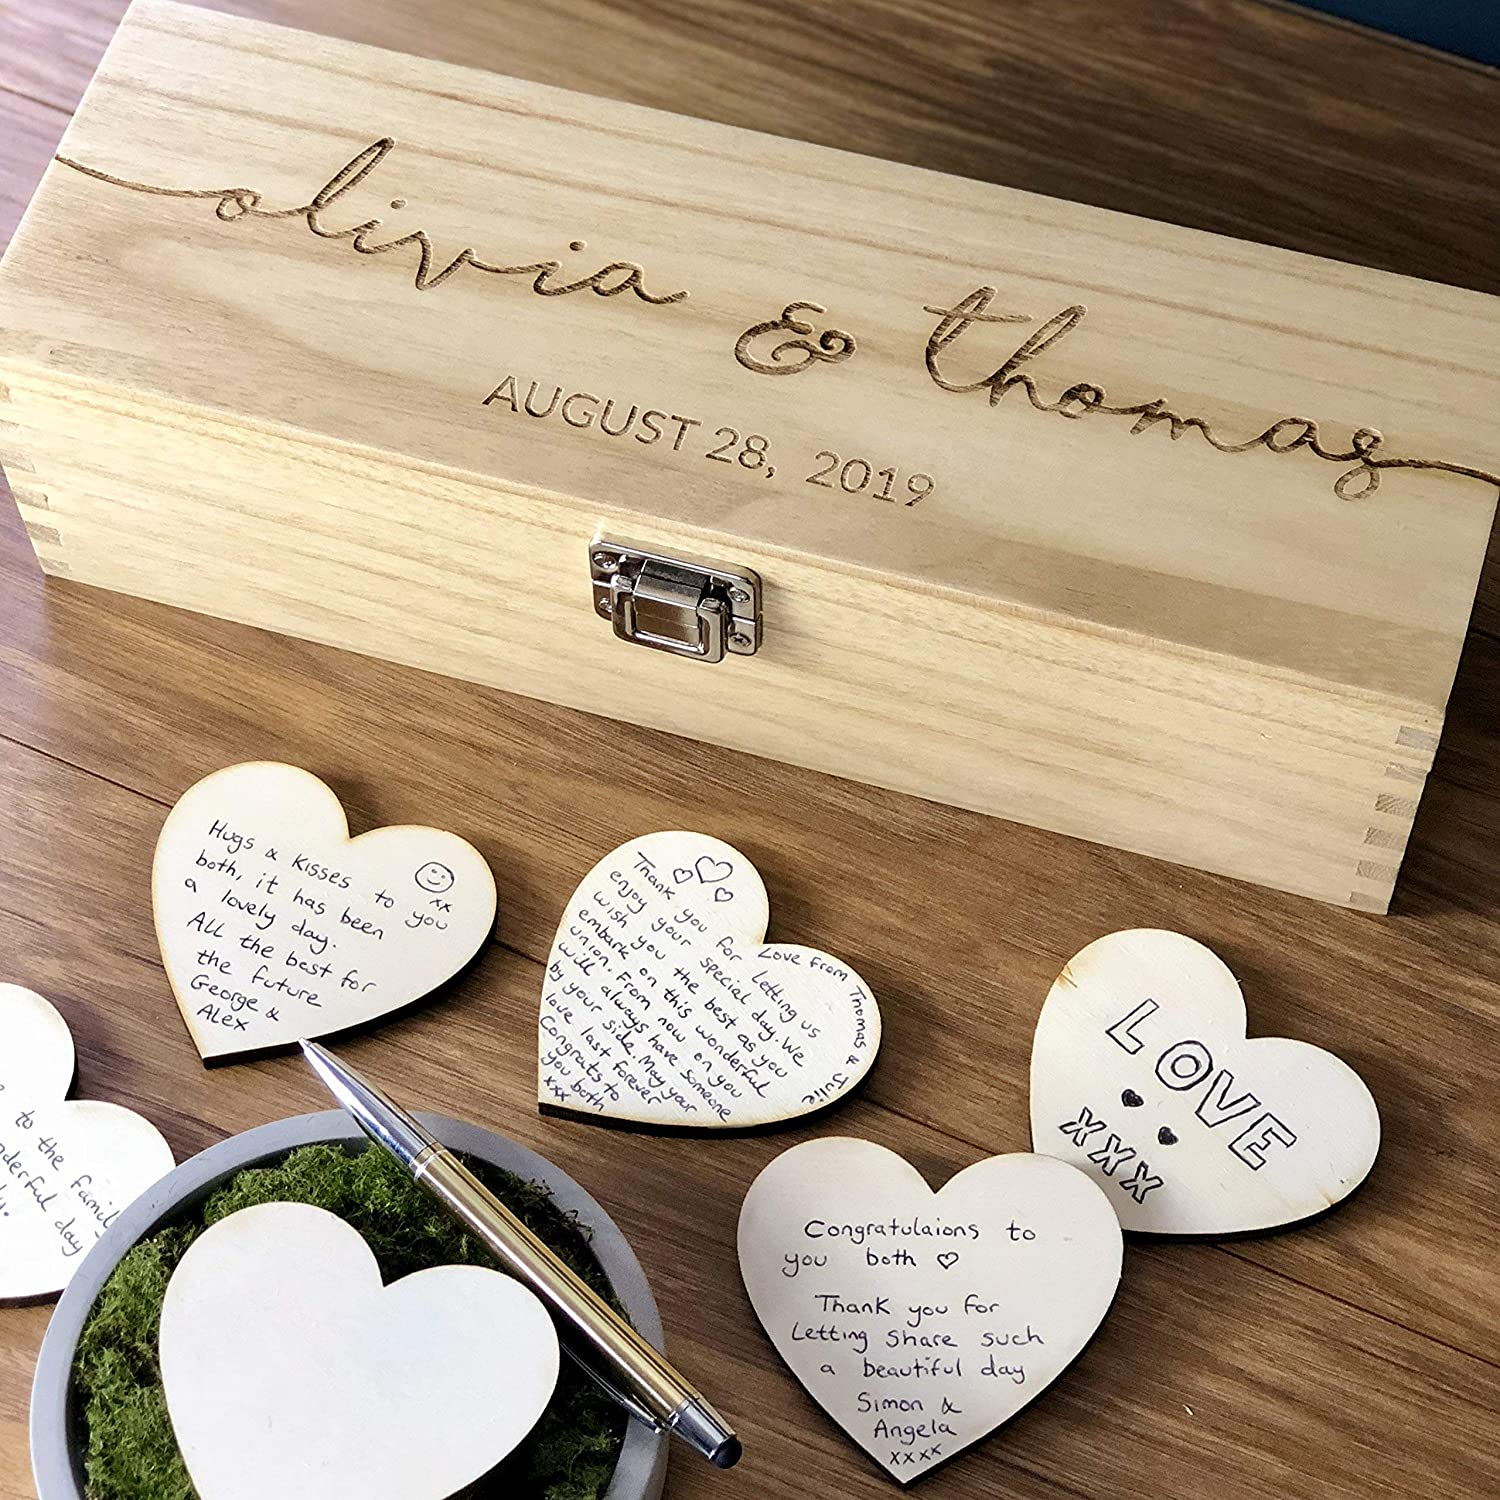 Wedding Guest Book Personalised Wooden Rustic Guest Book Guestbook Sign Personalised Custom Guest Book GuestBook Alternatives With Wooden Hearts Hearts Drop Box Guest Book